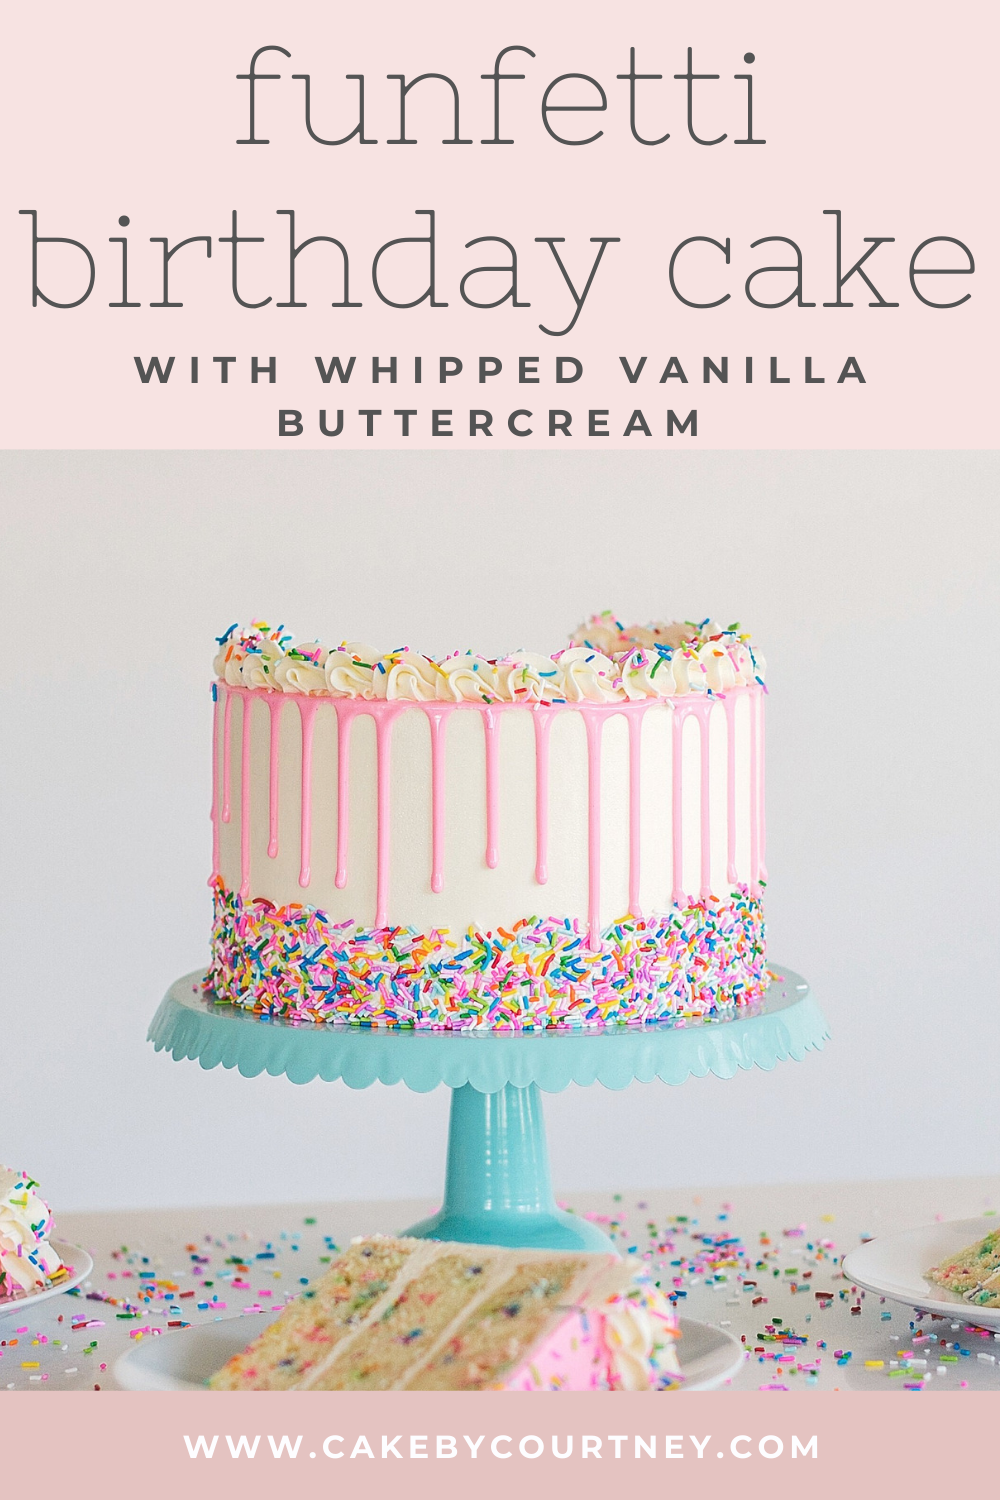 Funfetti Birthday Cake | Cake by Courtney